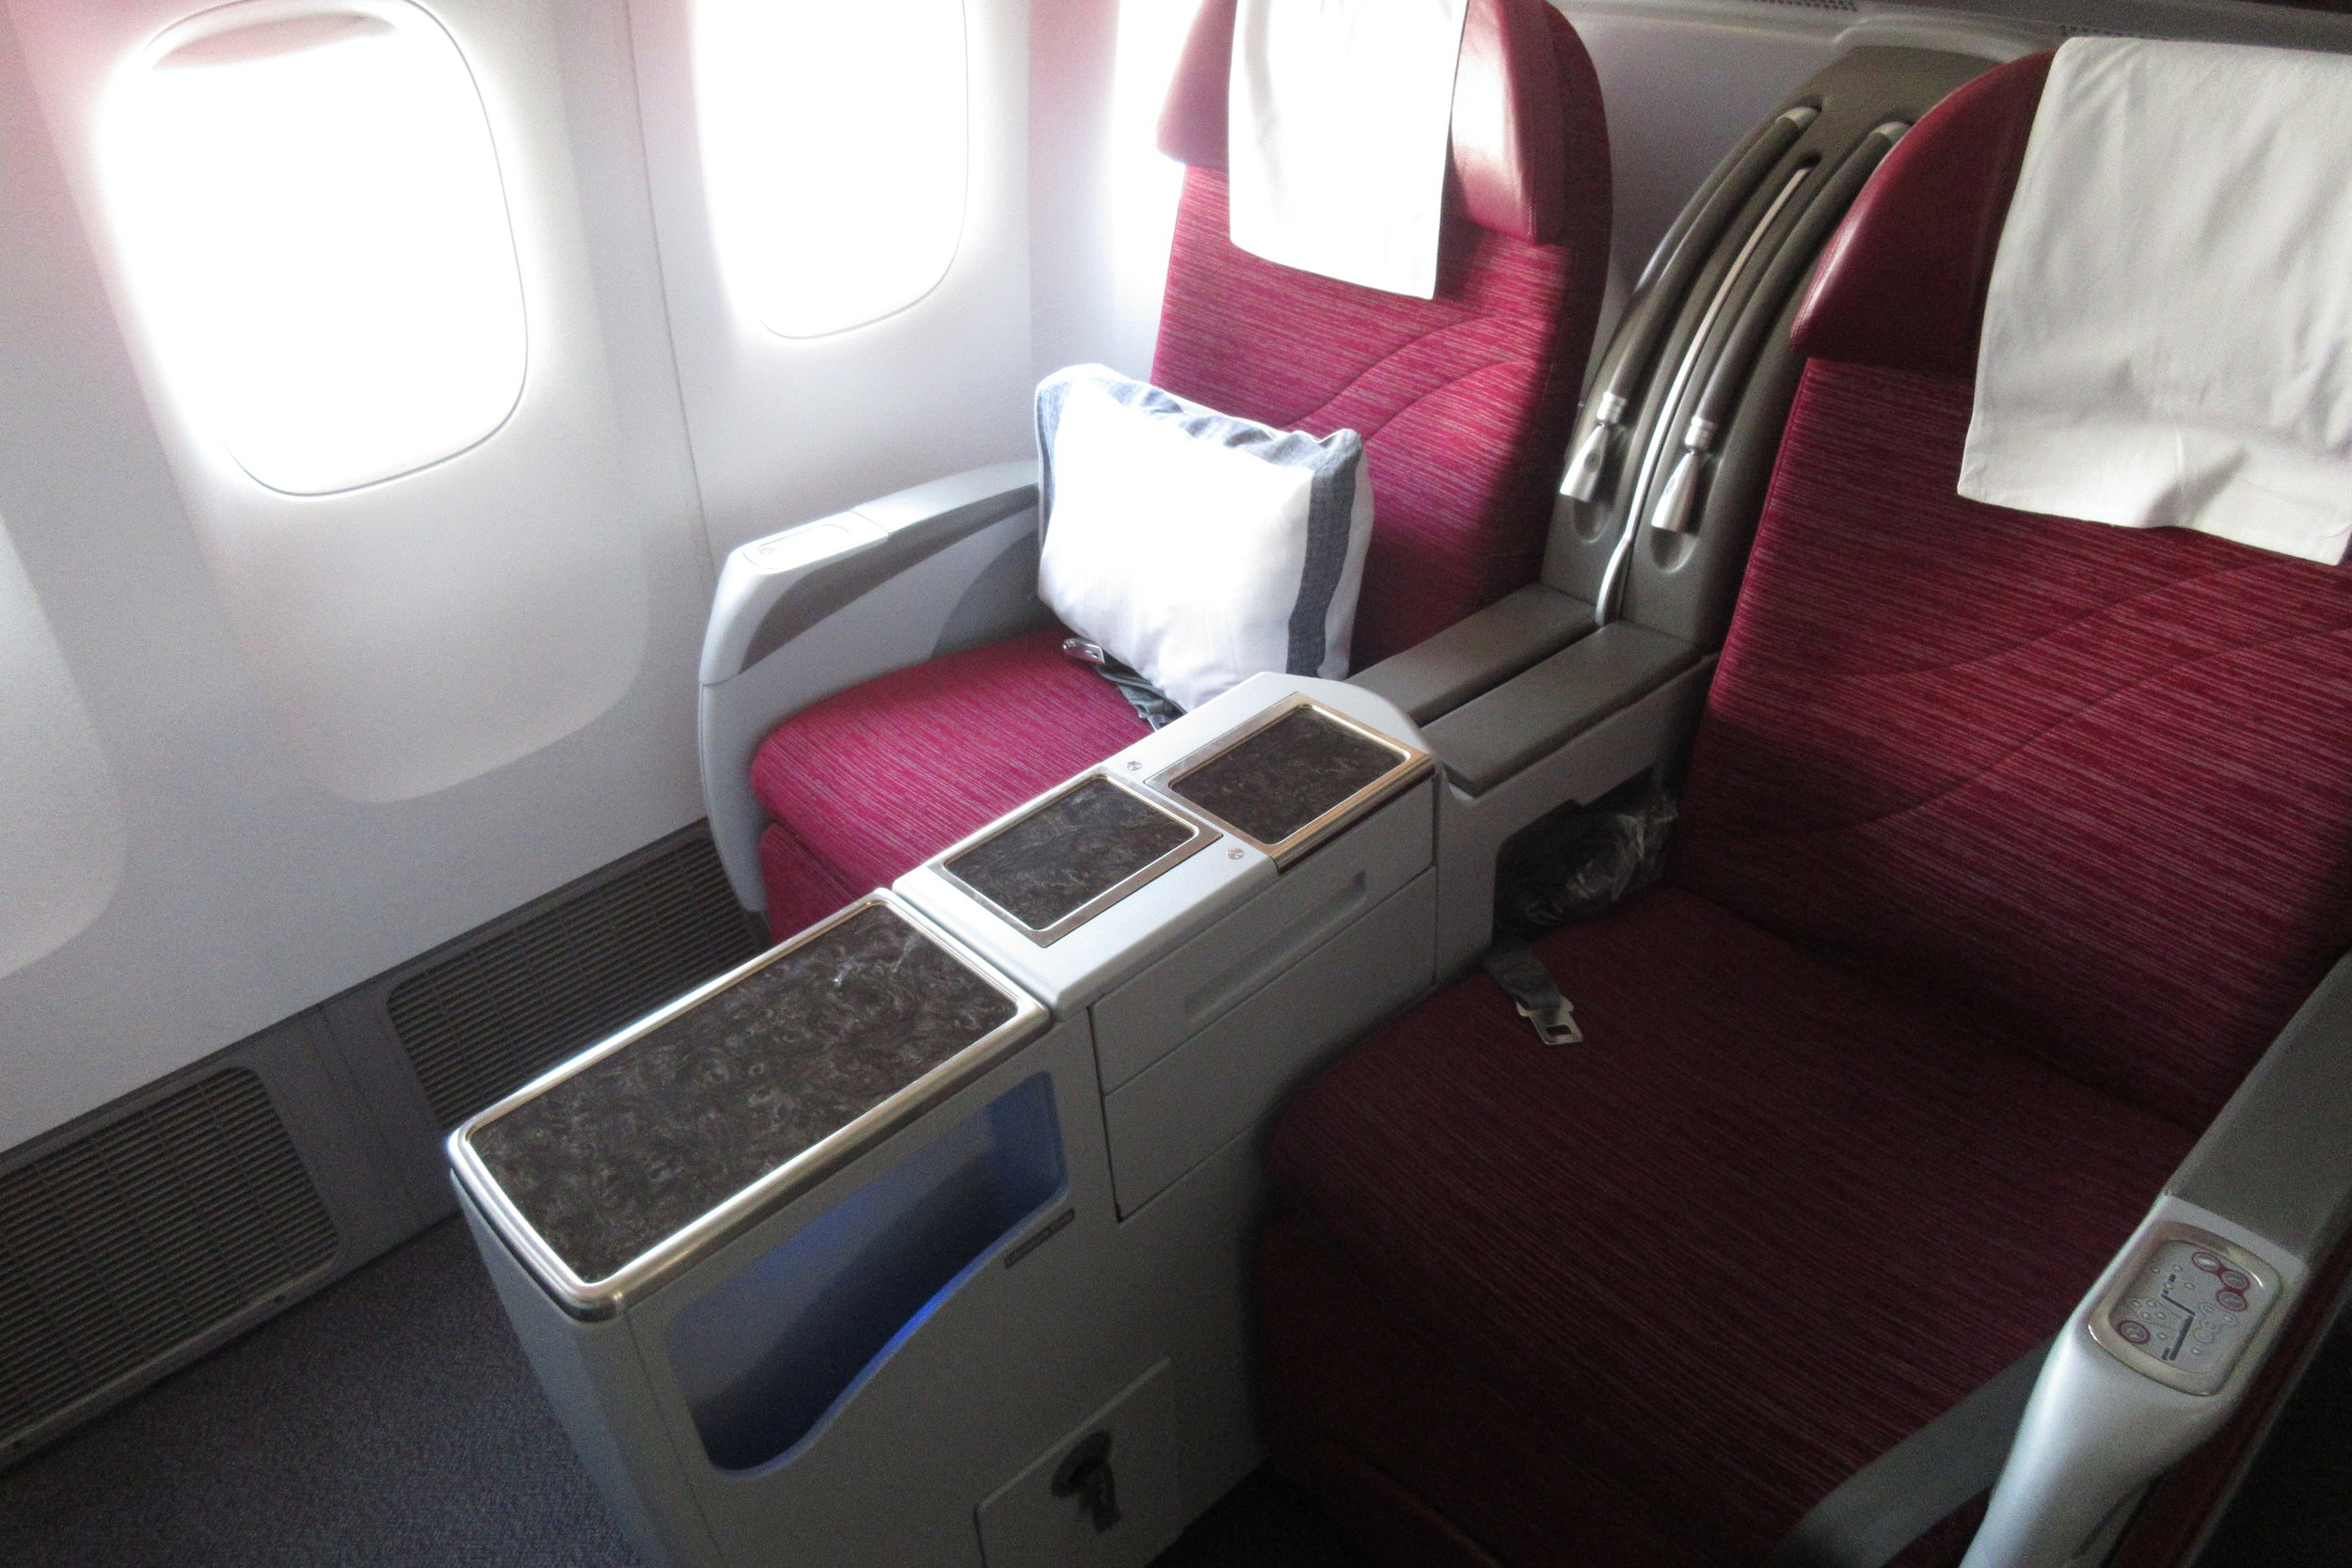 Qatar Airways 777 business class – Seats 3H and 3K